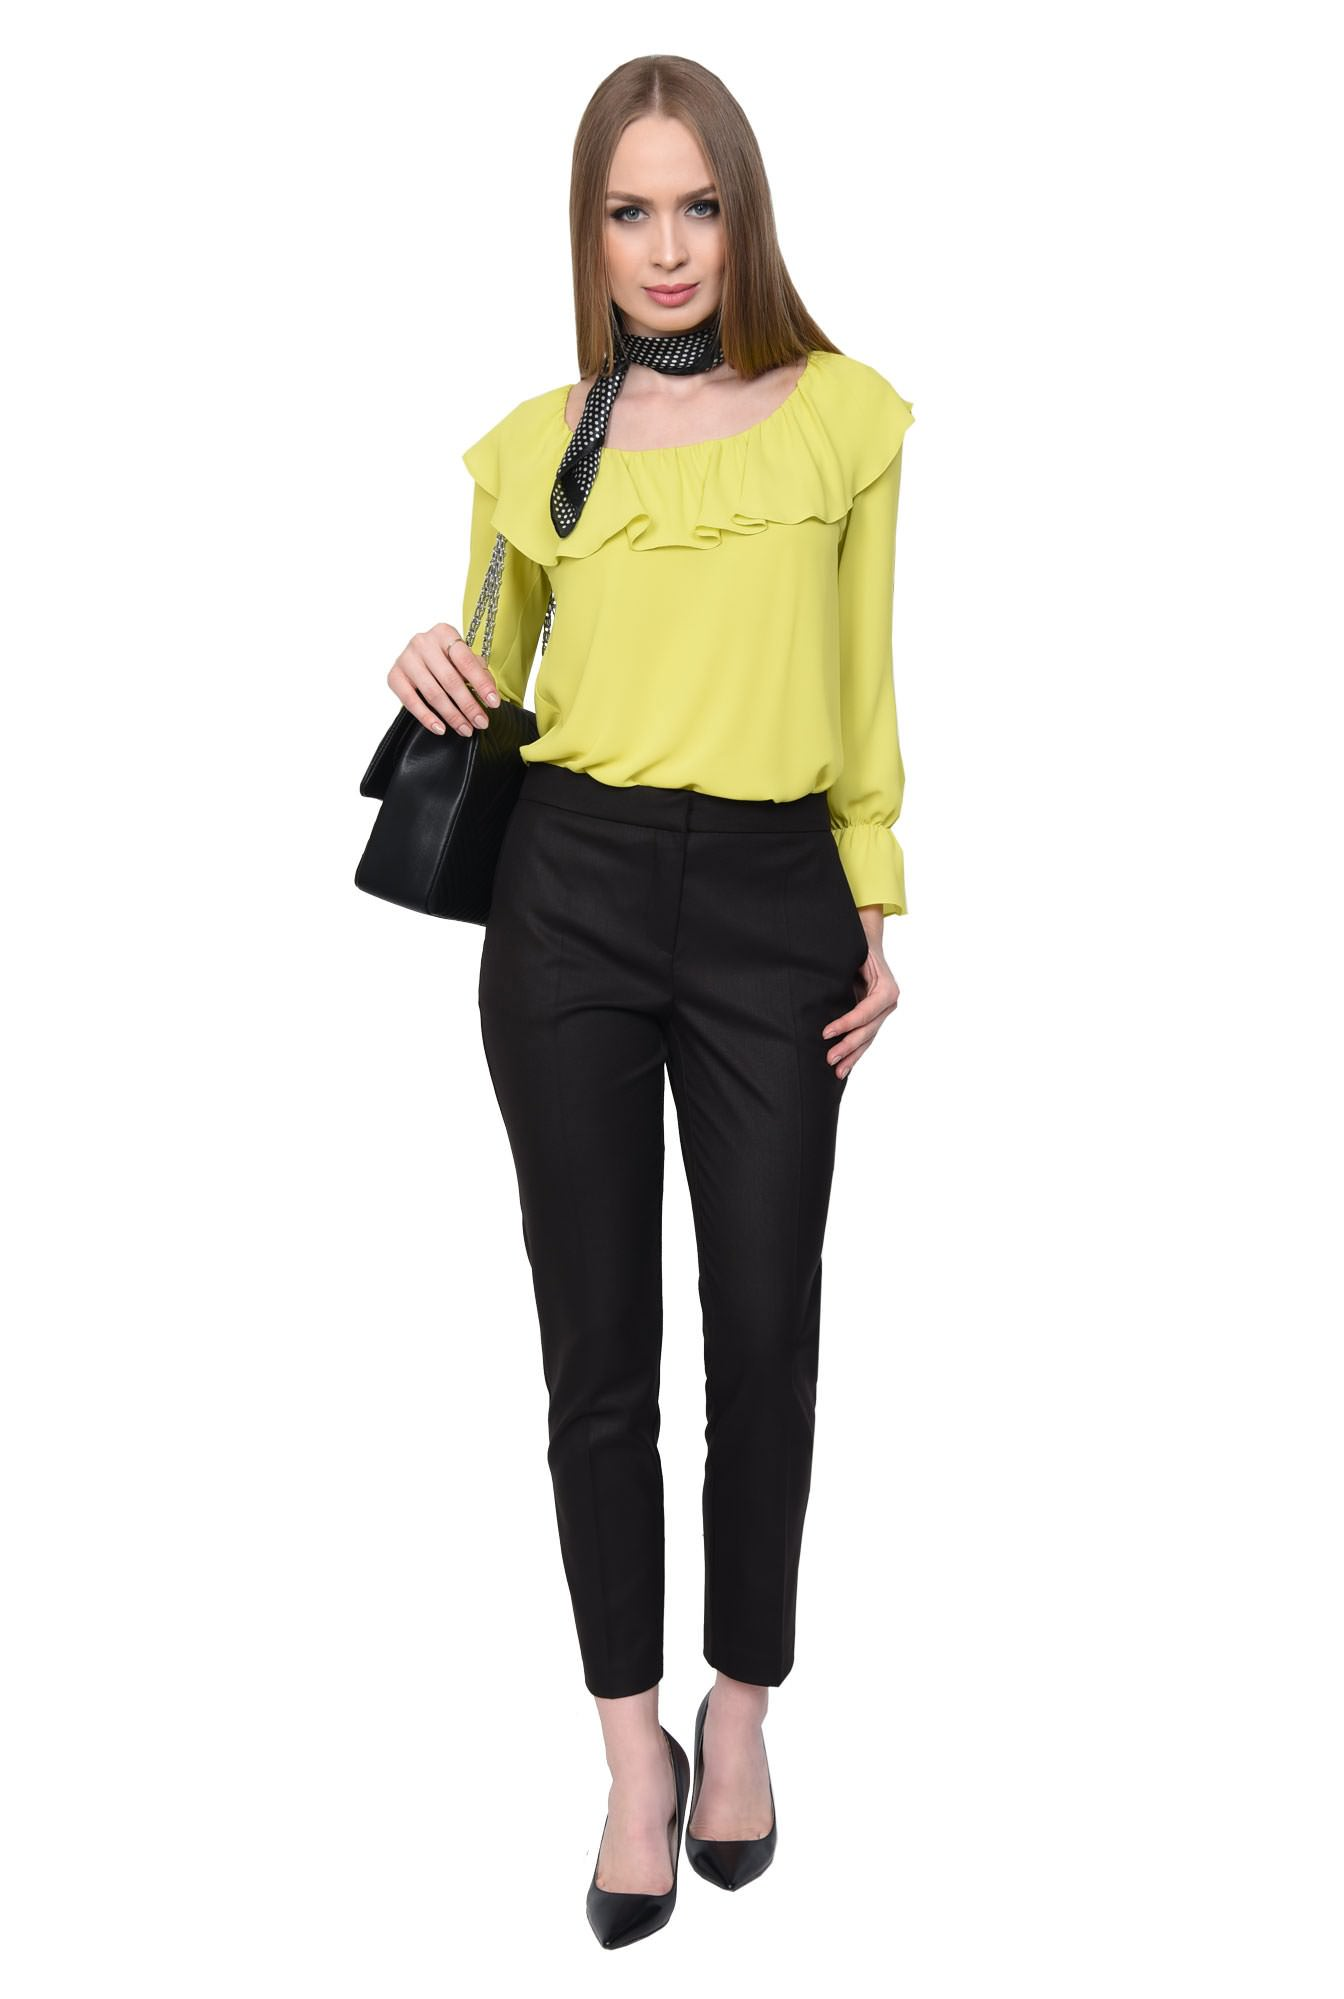 0 - PANTALON OFFICE CONIC PT 143-NEGRU